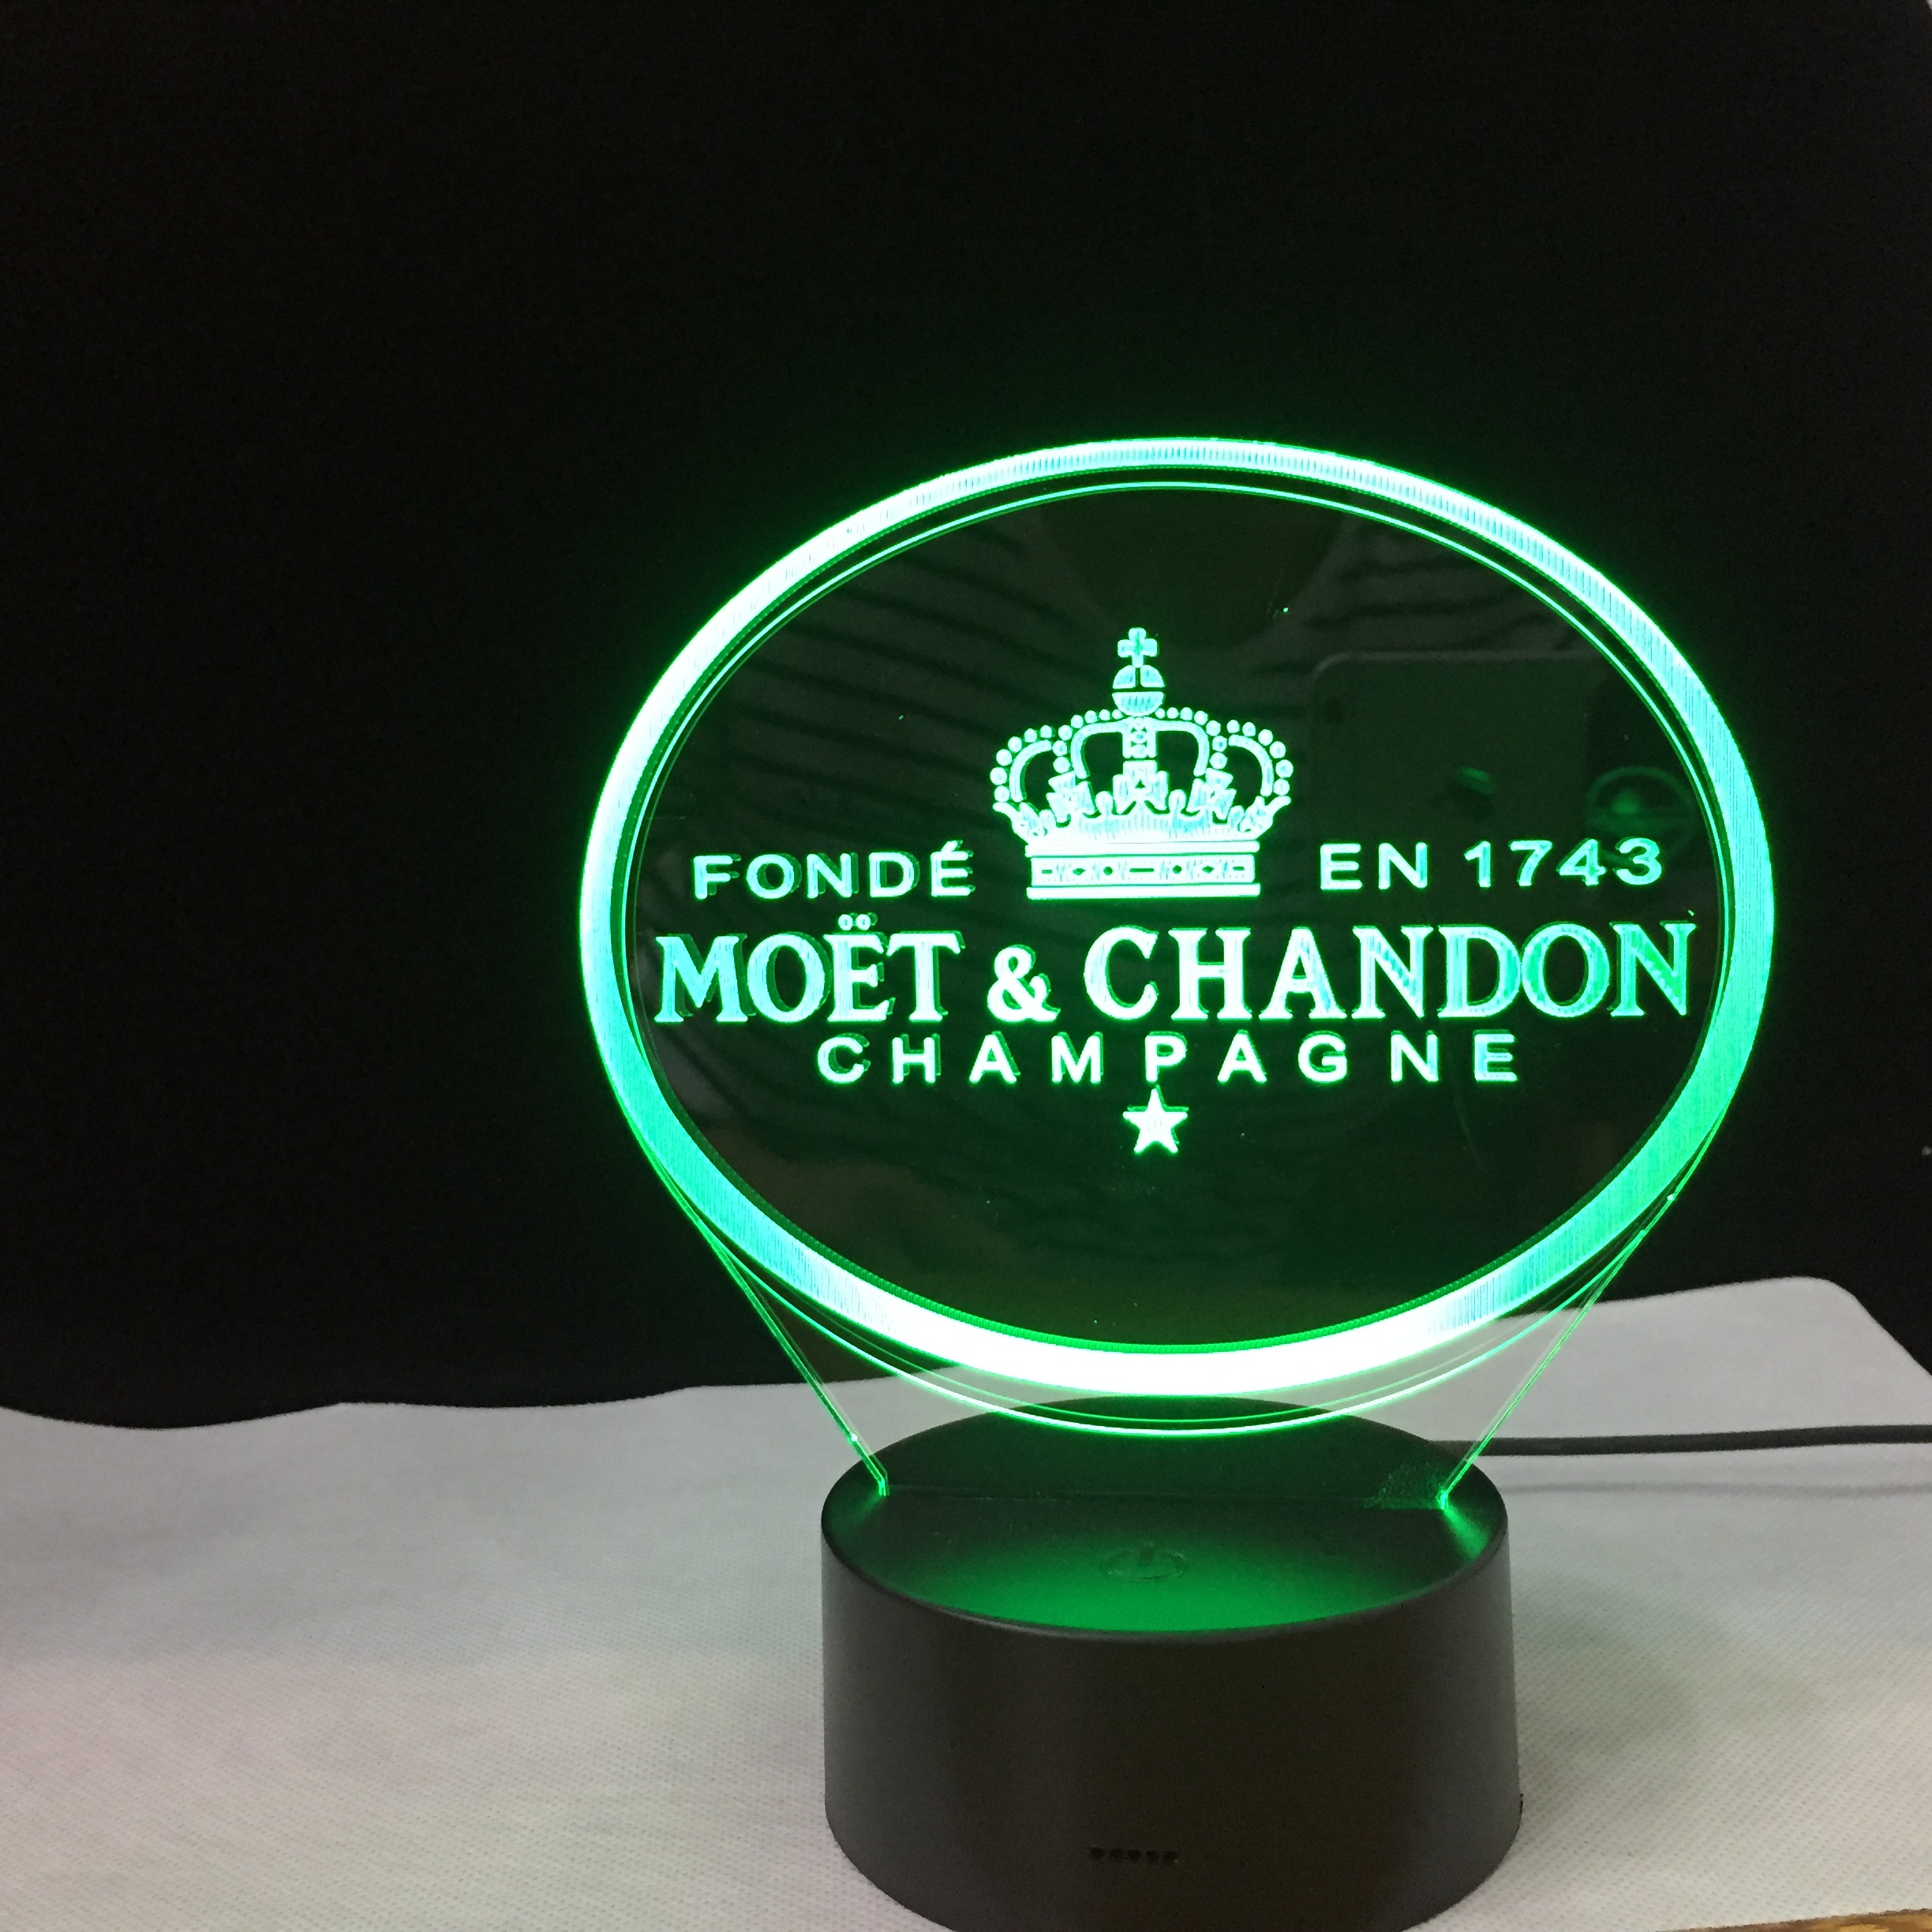 Moet Chandon 3D Led Night Light Lamp Gift For Clients Friend Baby Nightlight Usb Or Battery Powered Office Decor Lamp 349